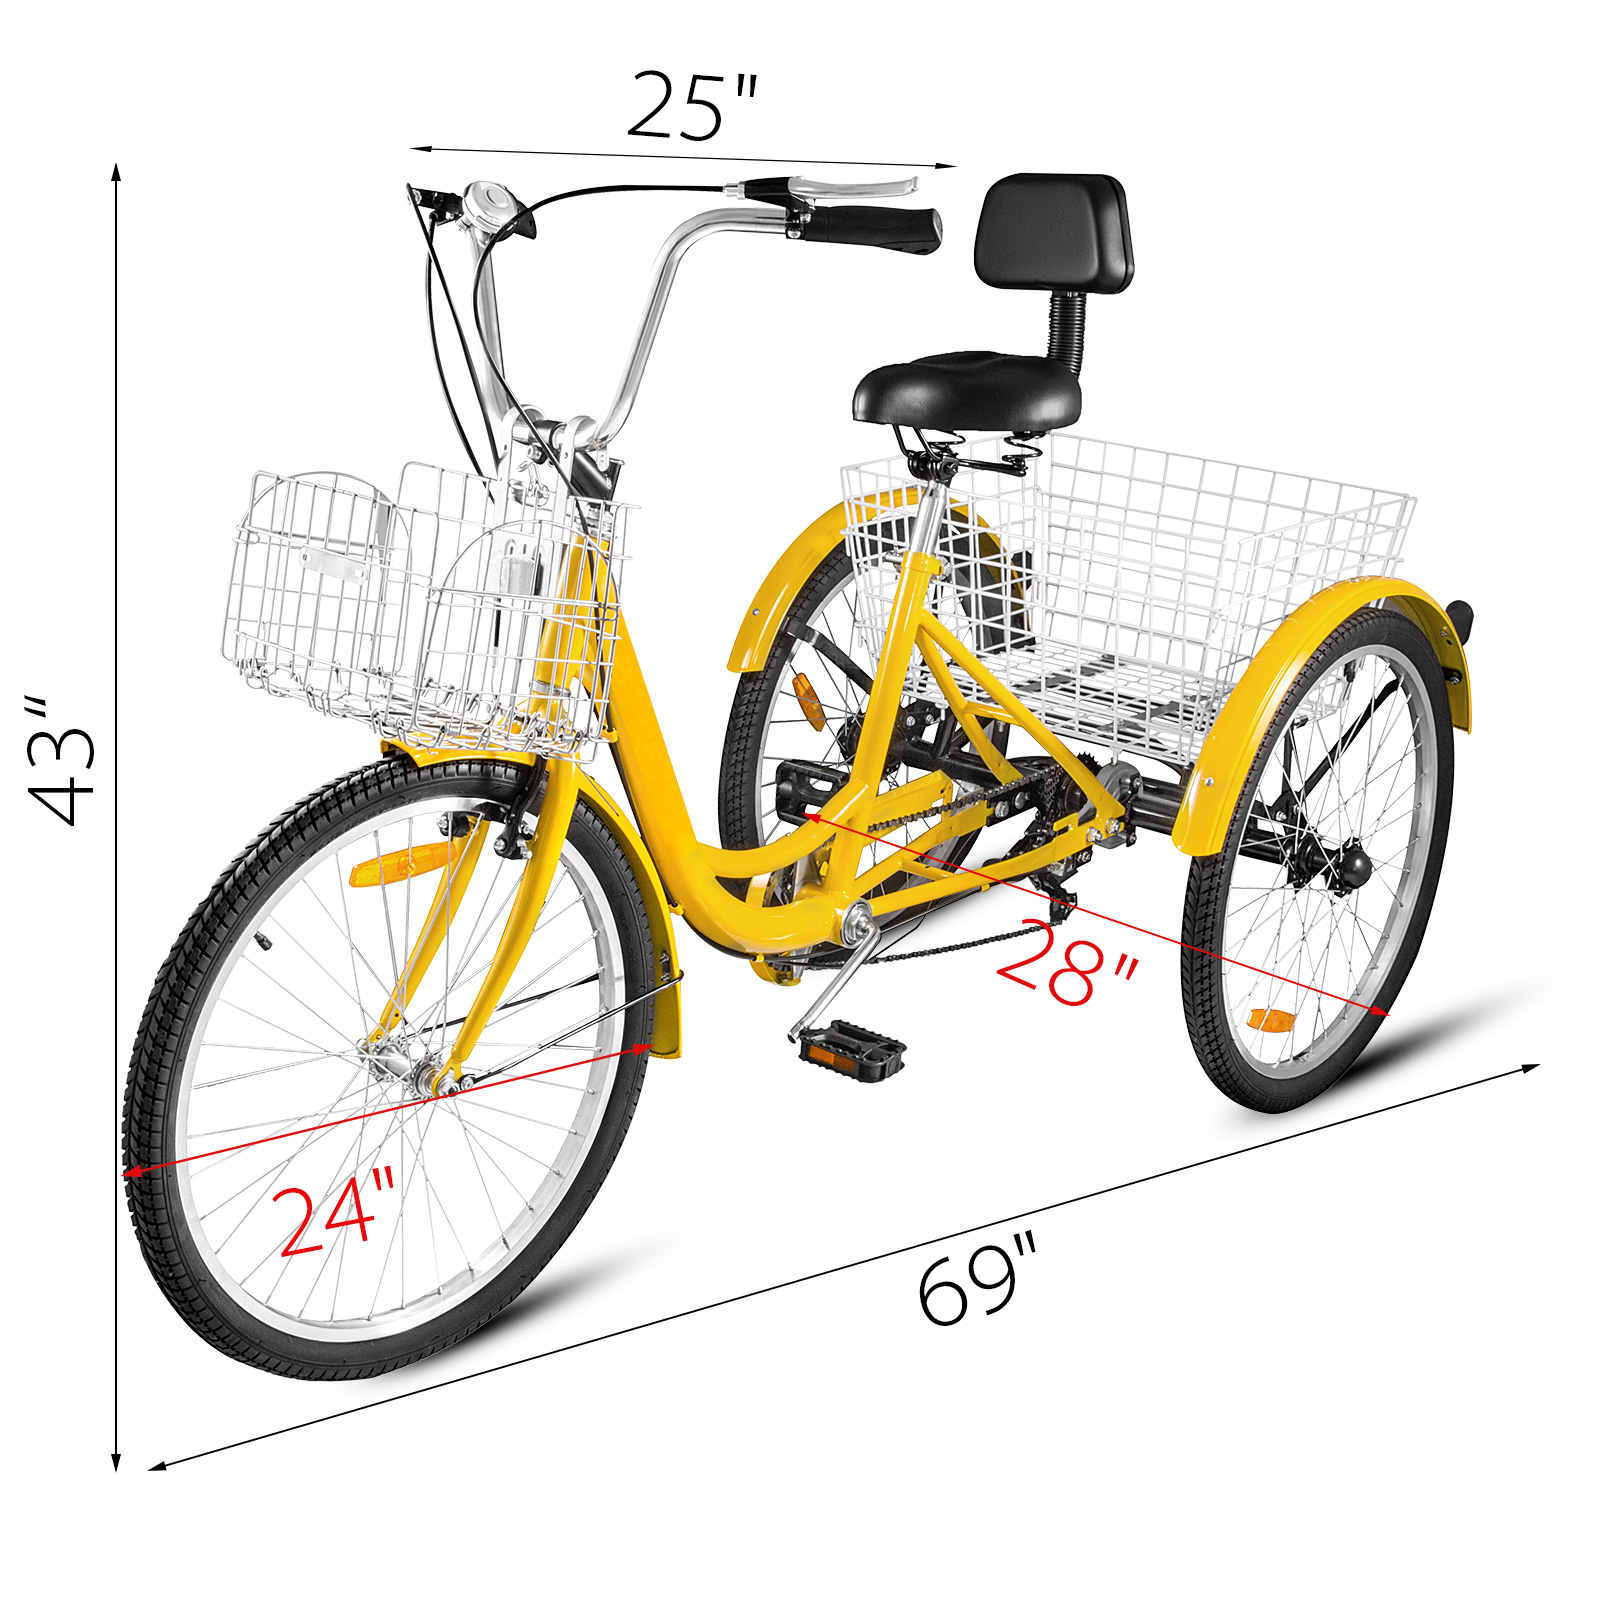 20-24-26-034-Adult-Tricycle-1-7-Speed-3-Wheel-For-Shopping-W-Installation-Tools miniature 380